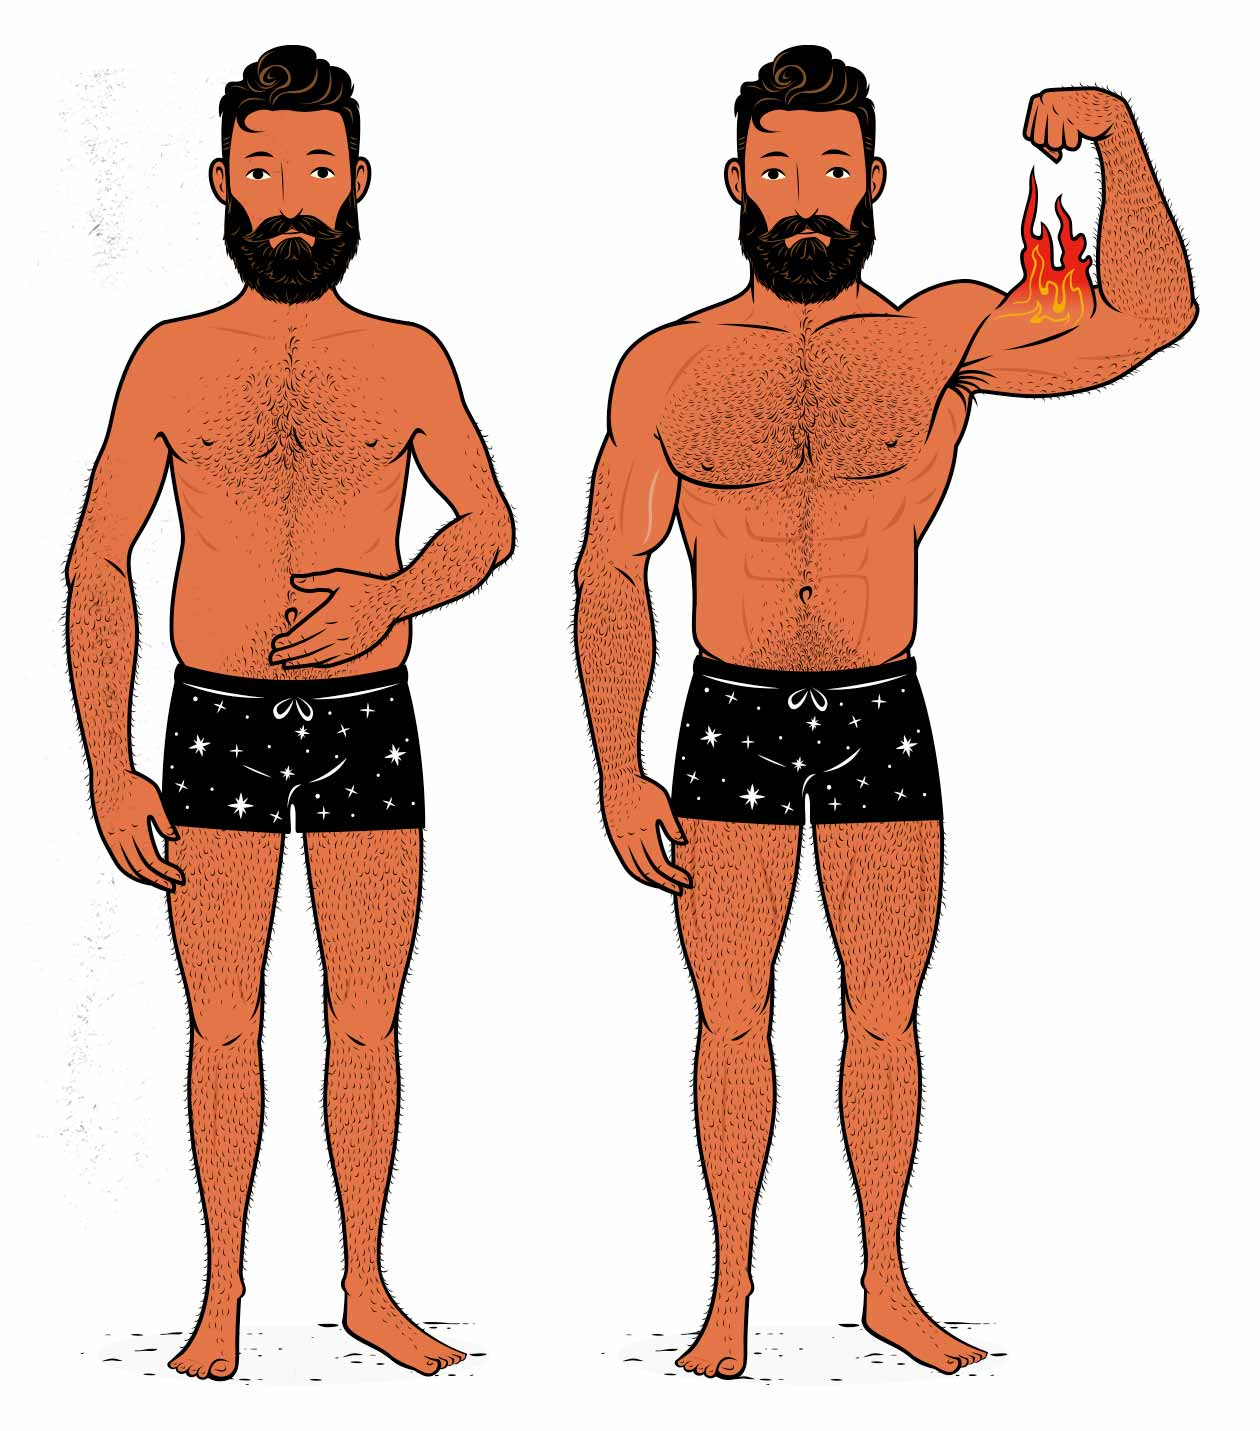 Illustration of a skinny-fat guy bulking up without gaining fat.